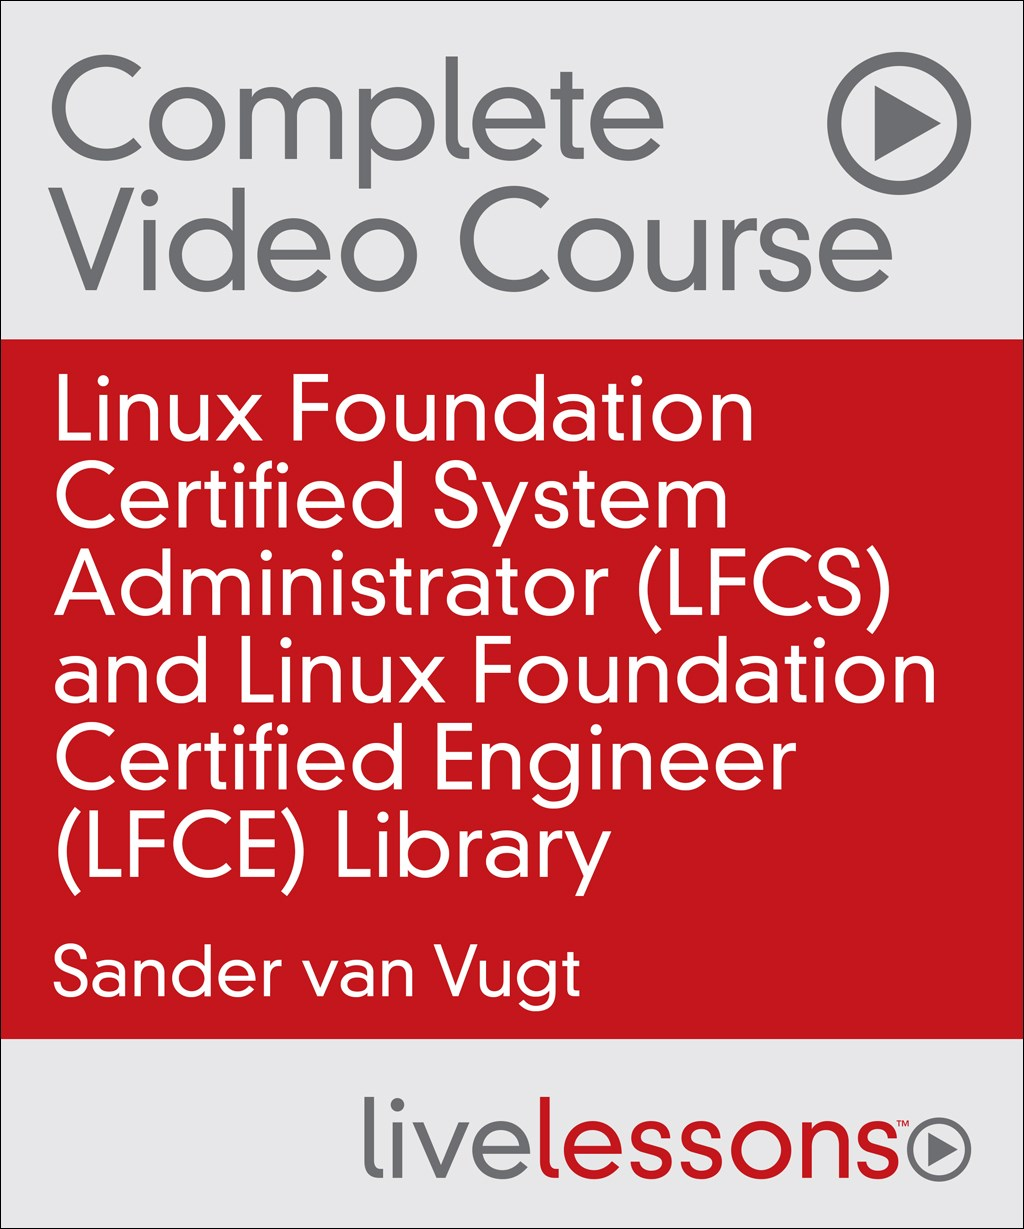 Linux Foundation Certified System Administrator (LFCS) and Linux Foundation Certified Engineer (LFCE) Complete Video Course Library